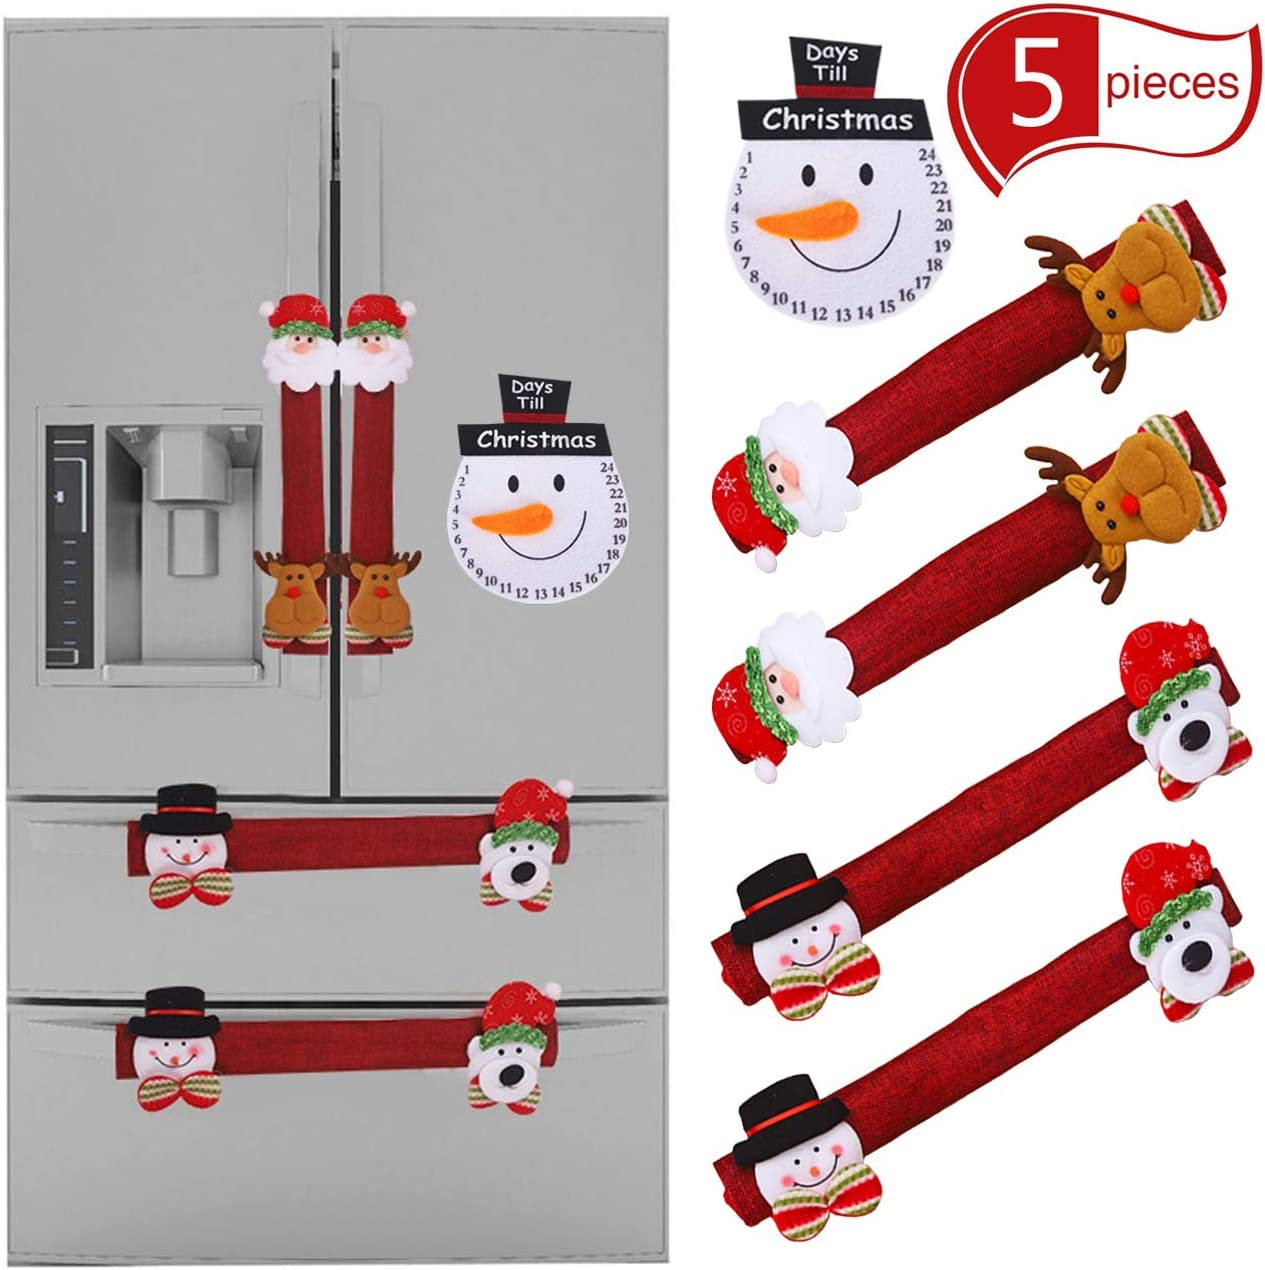 Acronde 4PCS Christmas Refrigerator Door Handle Covers Set and 1PCS Snowman Fridge Decal, Oven Microwave Dishwasher Door Handle Protector for Christmas Kitchen Decoration